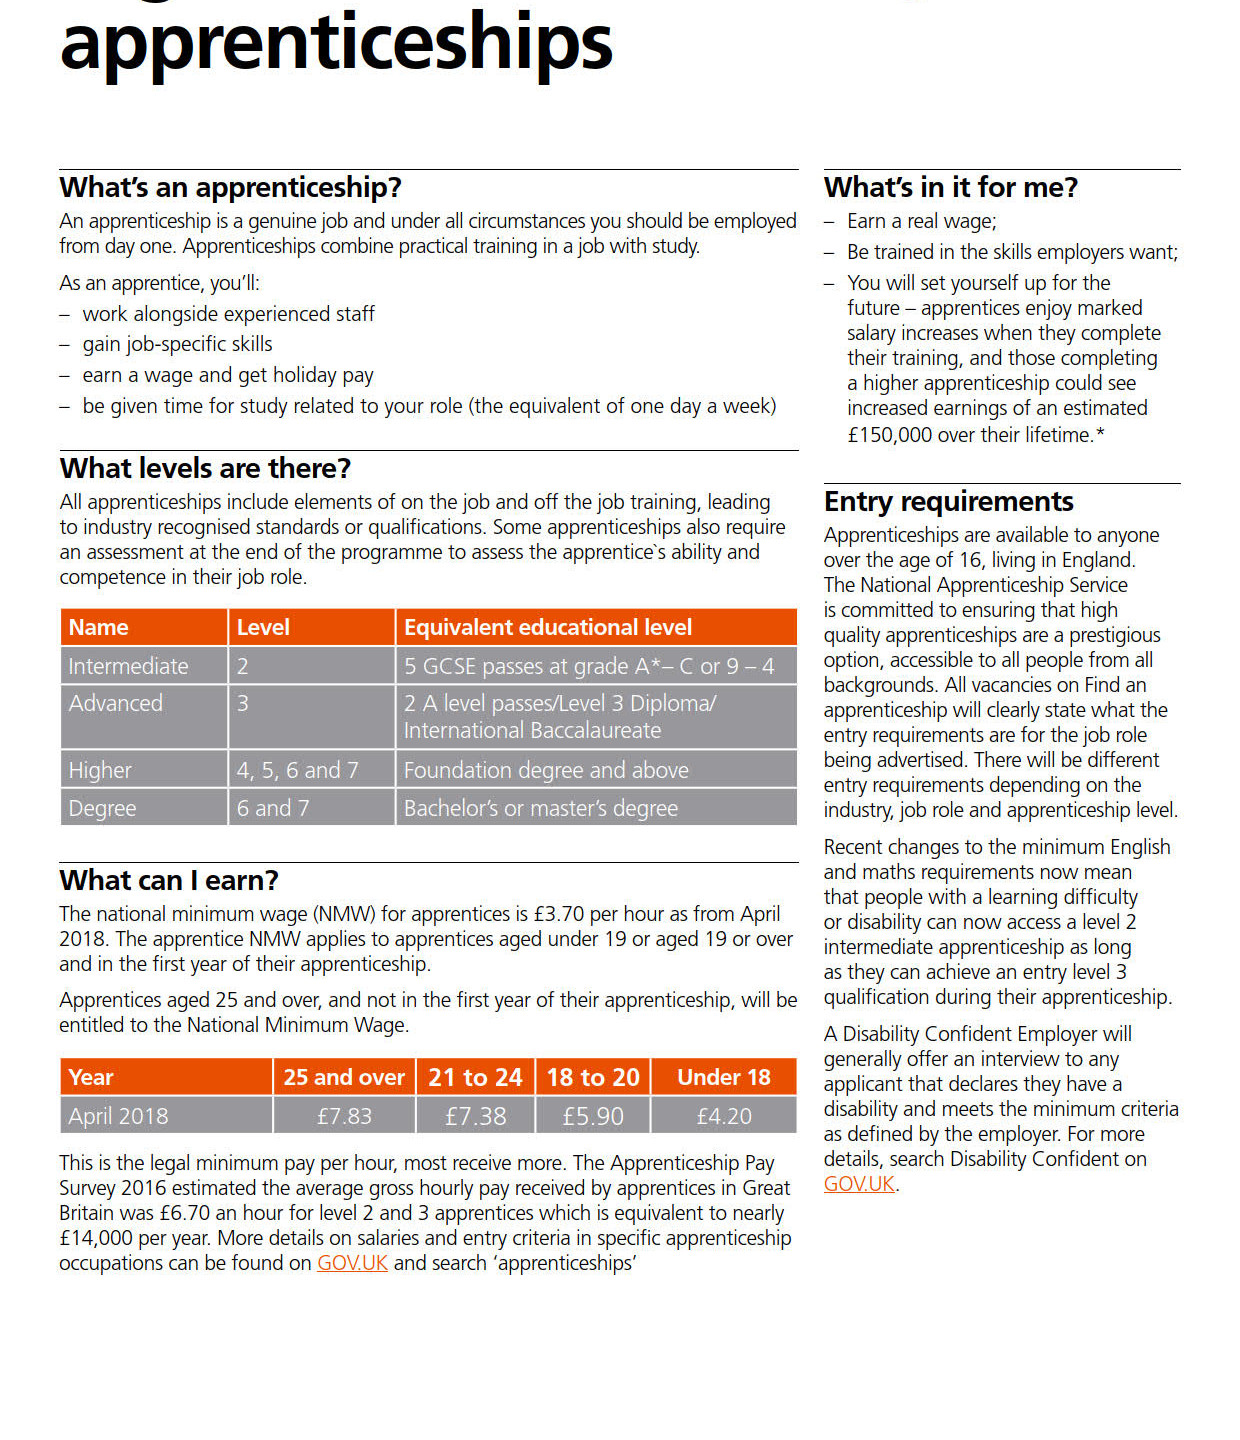 Guide-to-Apprenticeships_090418_1